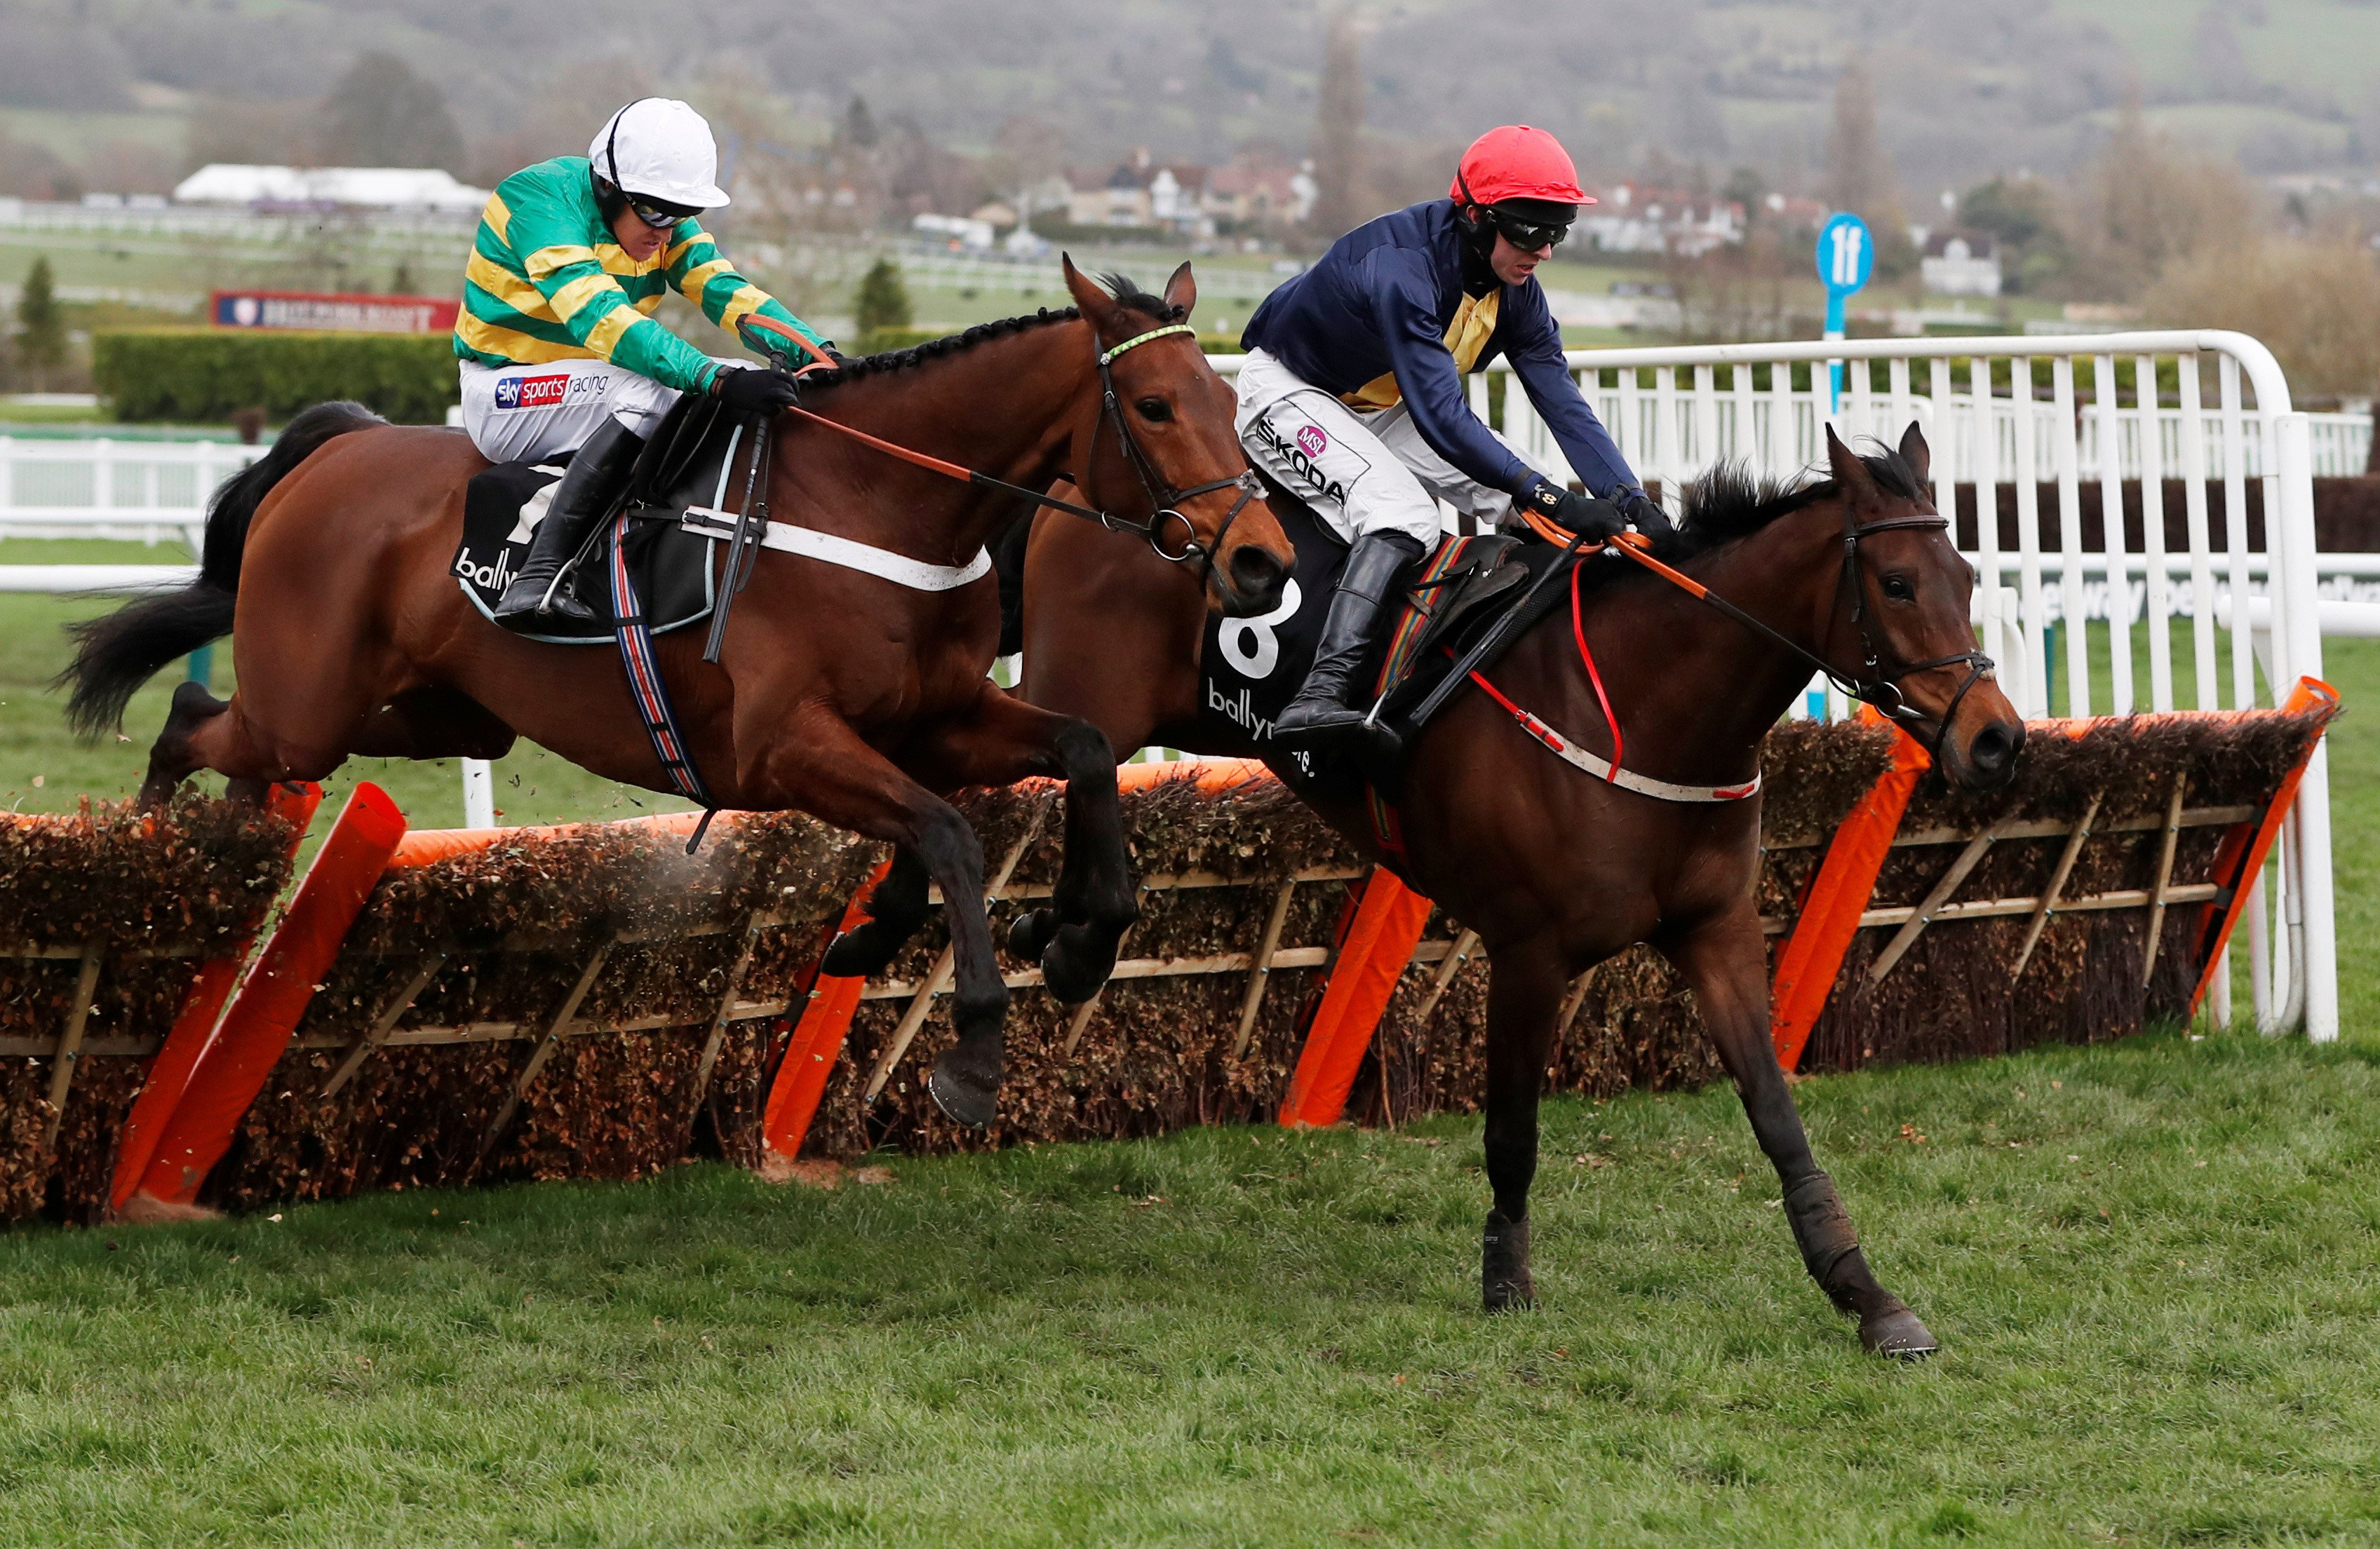 Cheltenham Festival 2019: City Island sees off brave Champ to land Ballymore Novices' Hurdle